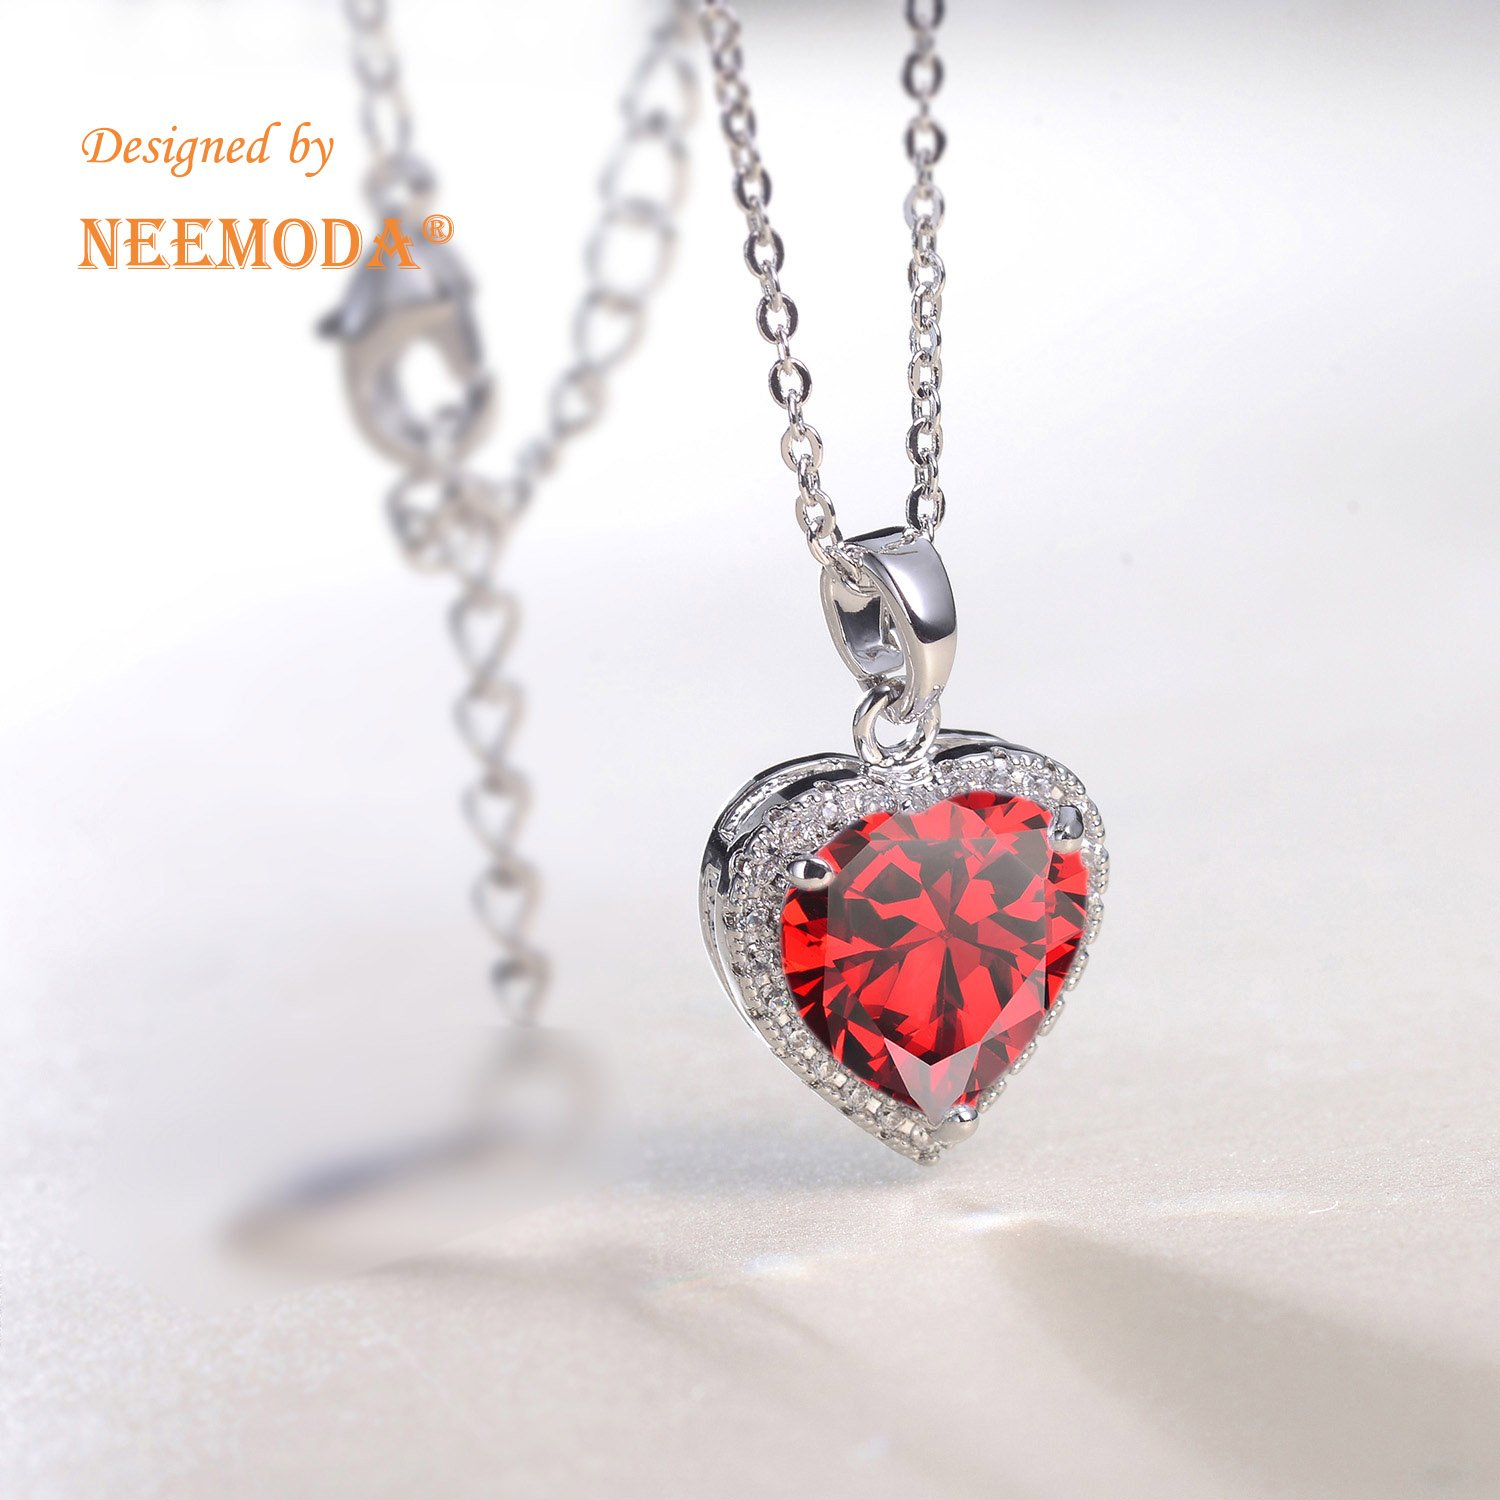 2 inches Triple White Gold Plated Chain 18 inches NEEMODA Shining Love Hand-Inlaid 5A Cubic Zirconia Heart Necklace with Luxury Gift Box